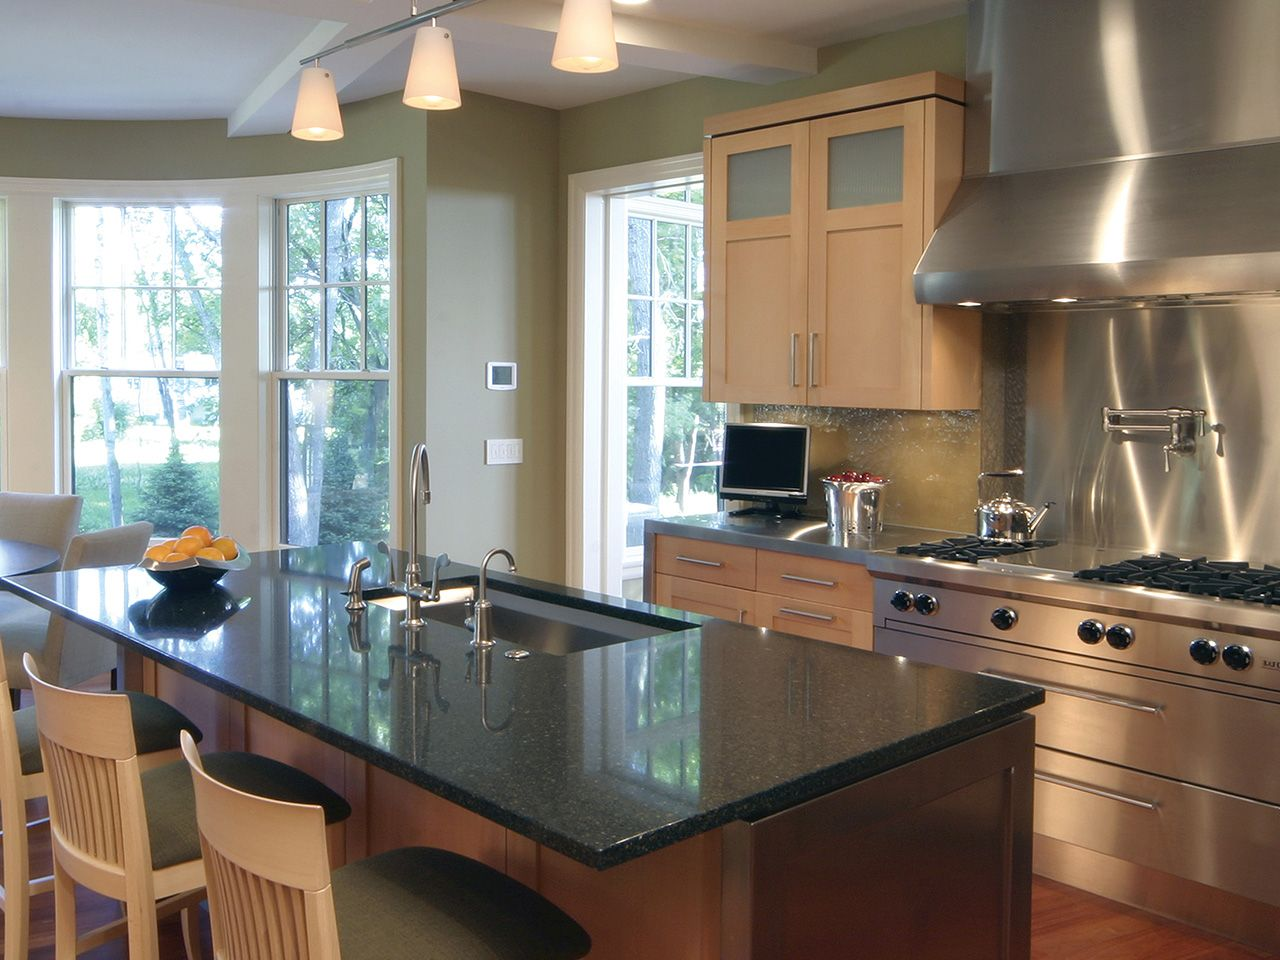 white blue green countertops backsplash gallery and color view in glass colors quartz powder kitchen with designs cooking schemes tile fused